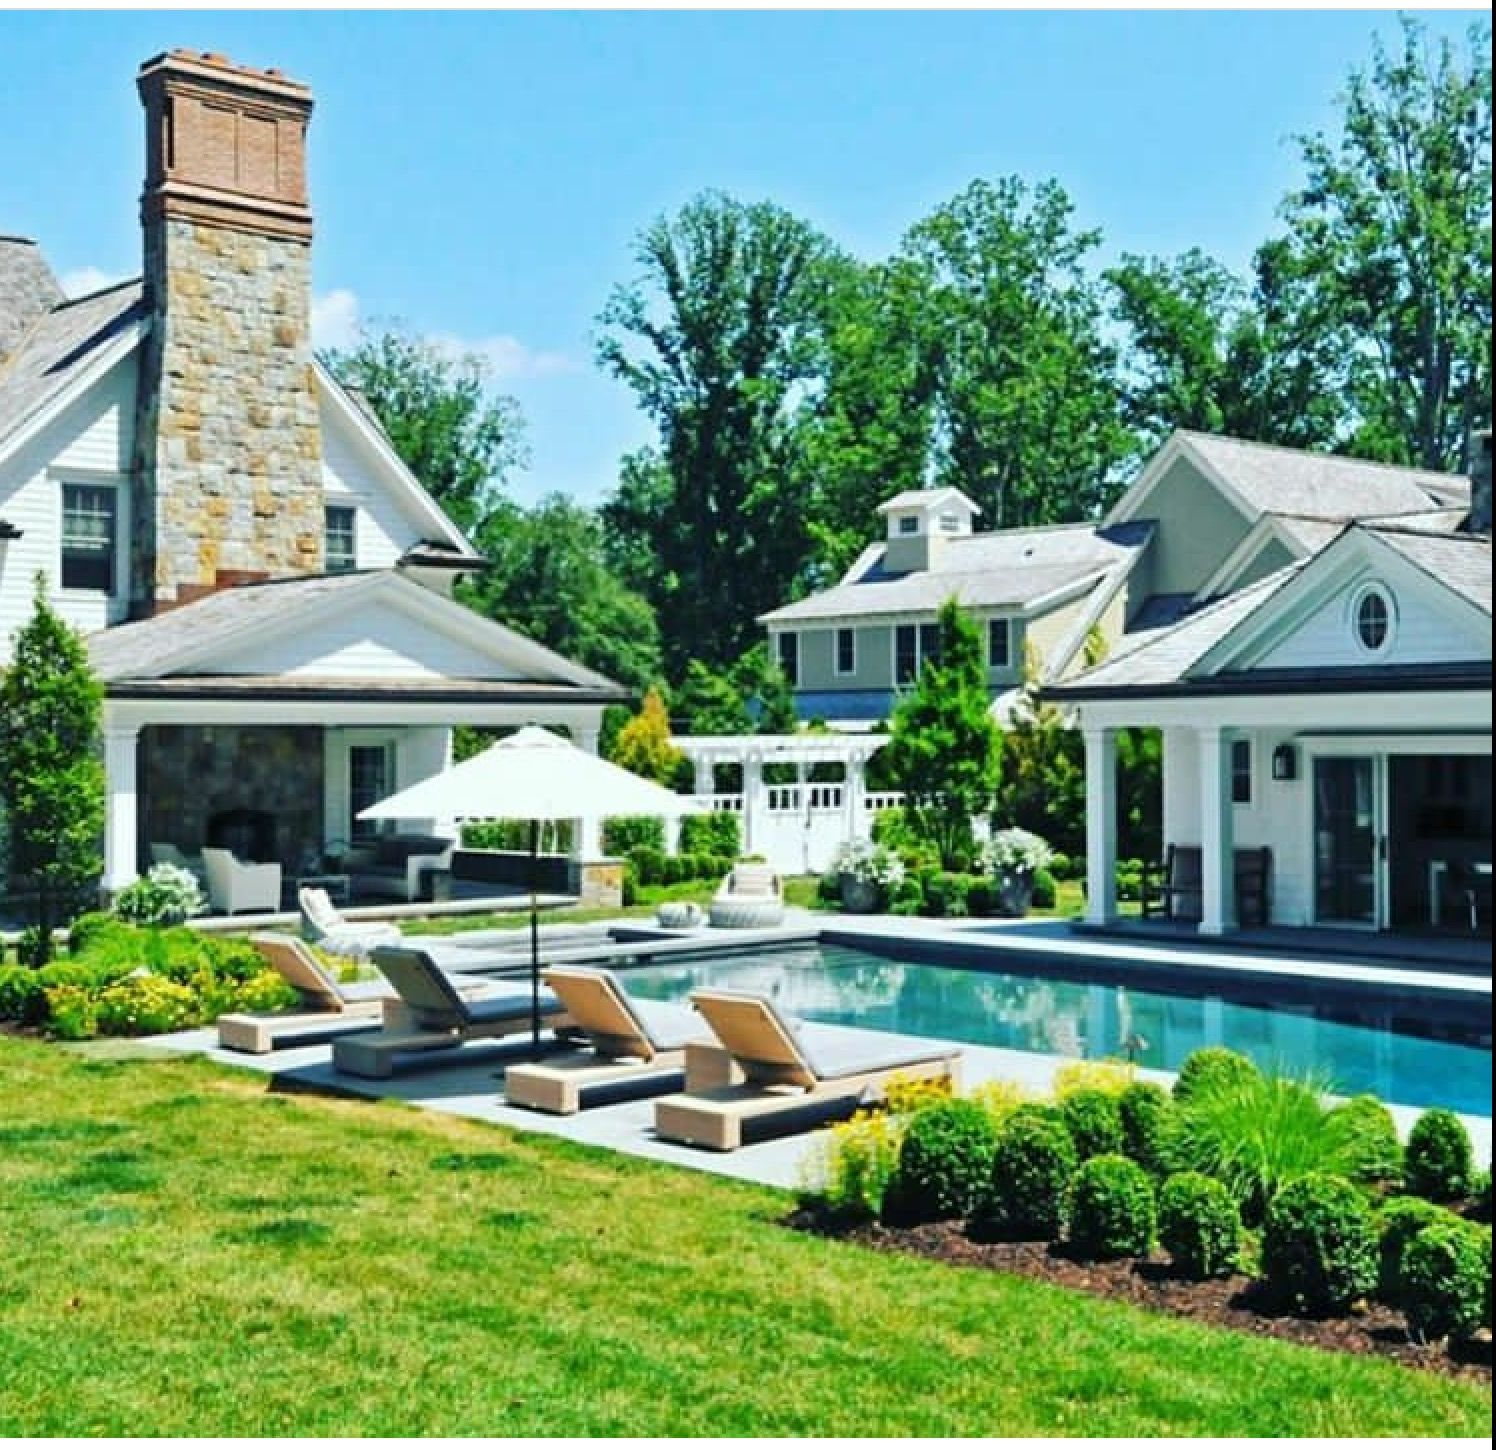 Beautiful Pretty Pool, And Backyard At This Dream Home!